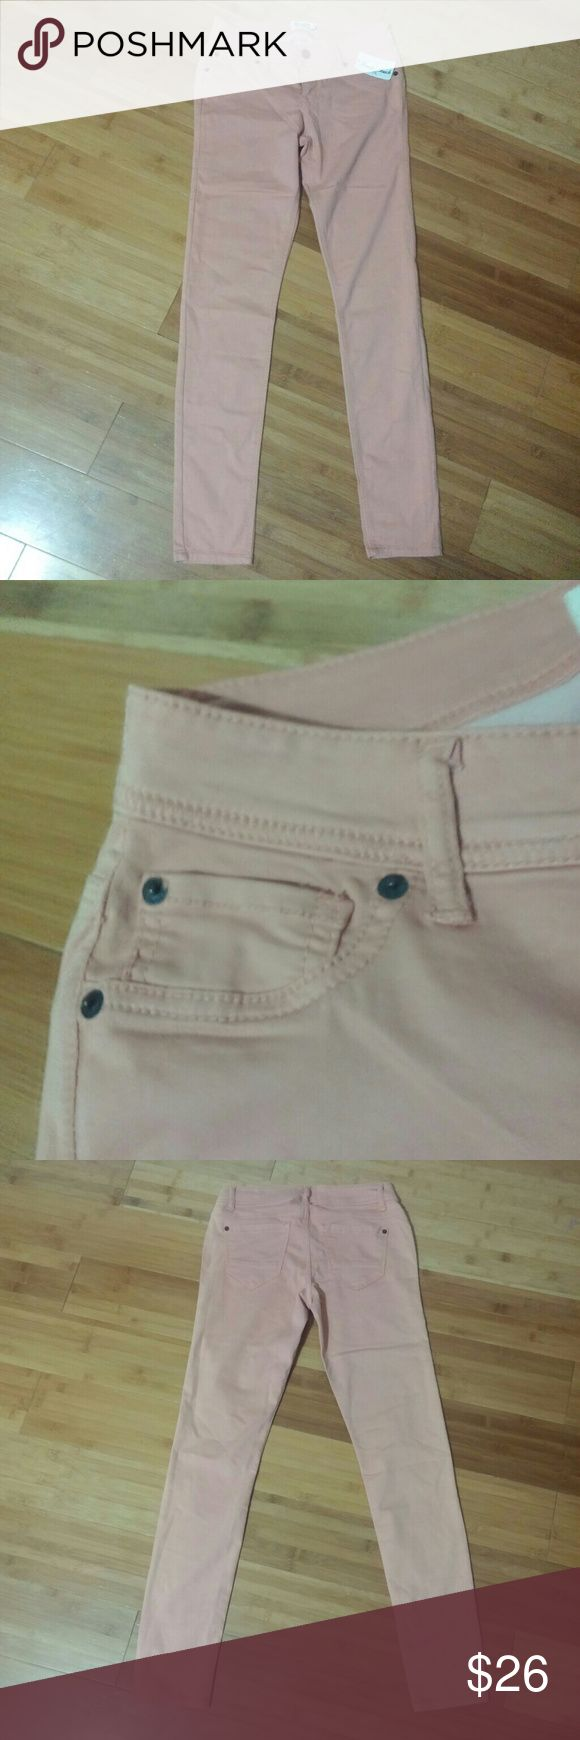 Coral Skinny jeans New never worn strechy material but not quiet leggings and soft scarlet blv Jeans Skinny